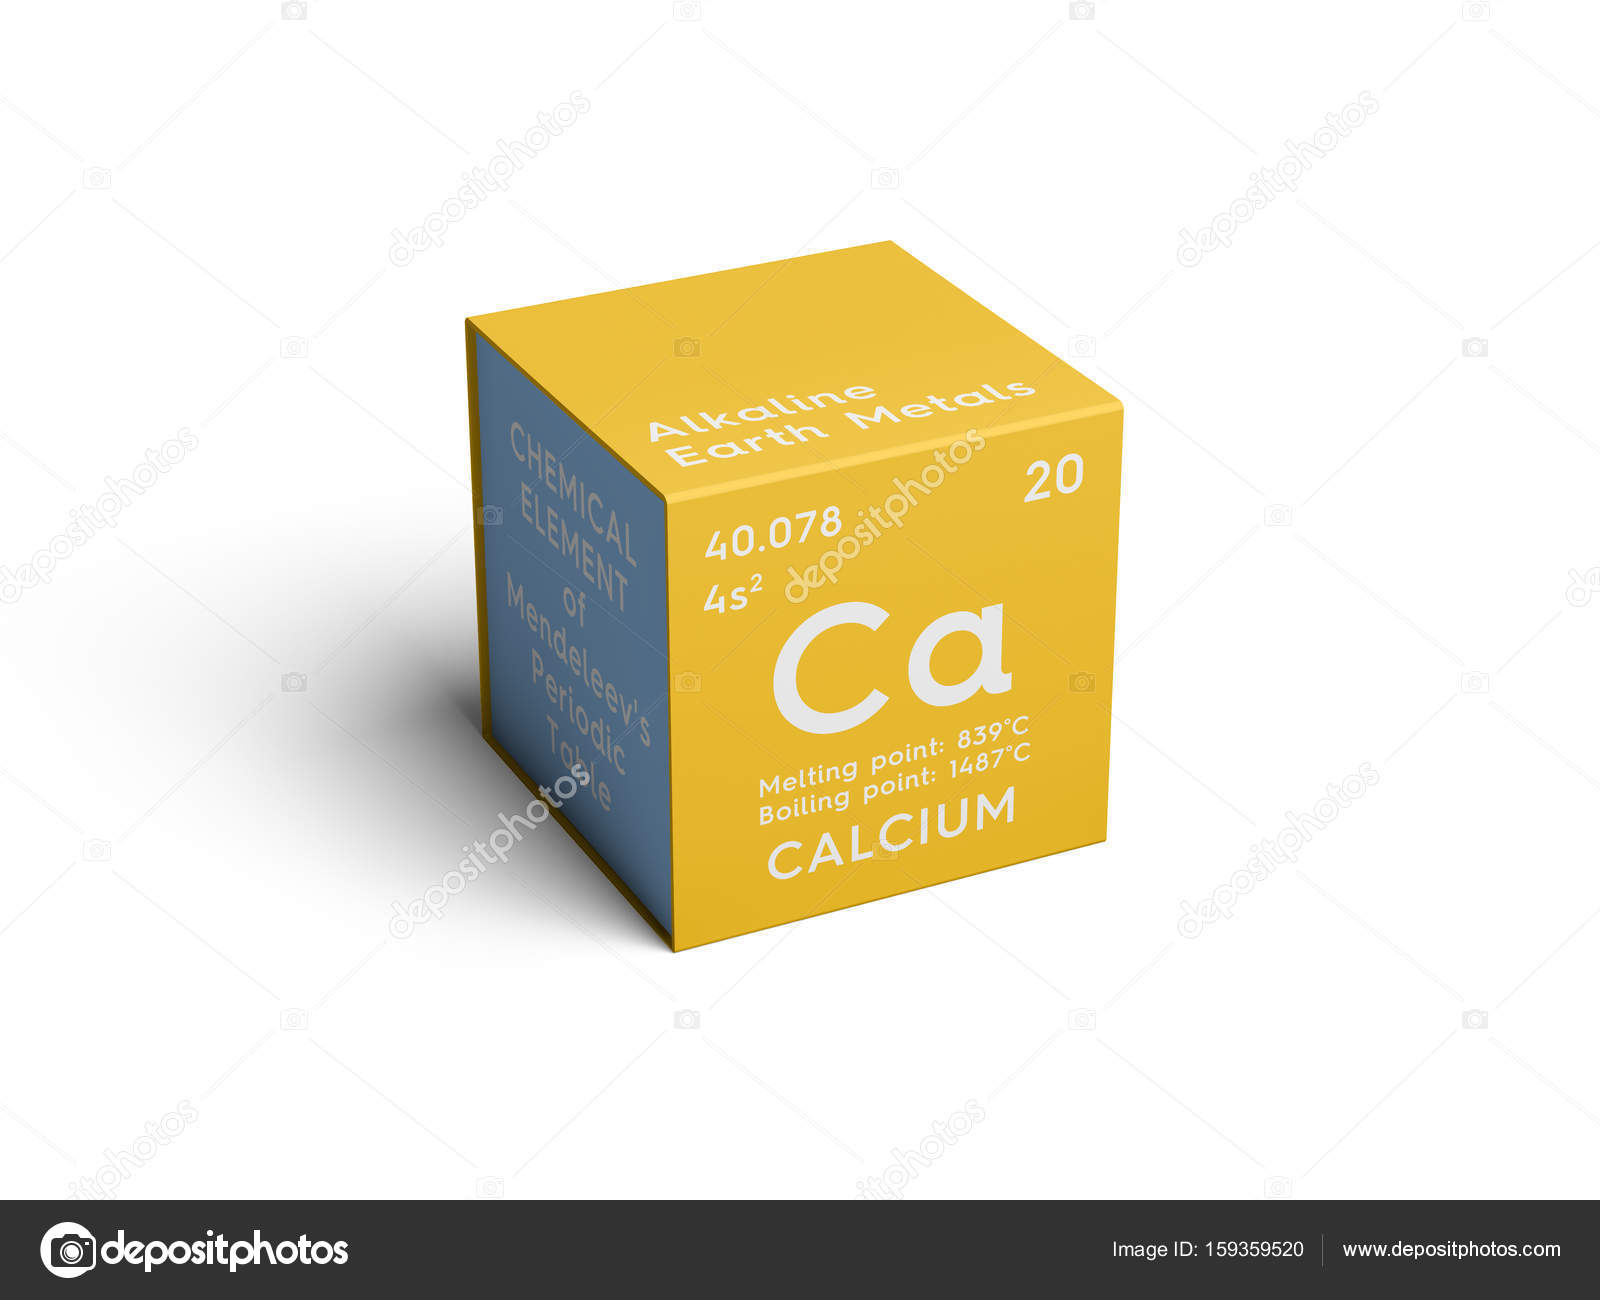 Calcium alkaline earth metals chemical element of mendeleevs alkaline earth metals chemical element of mendeleevs periodic table calcium in square cube creative concept photo by sanches812 urtaz Gallery